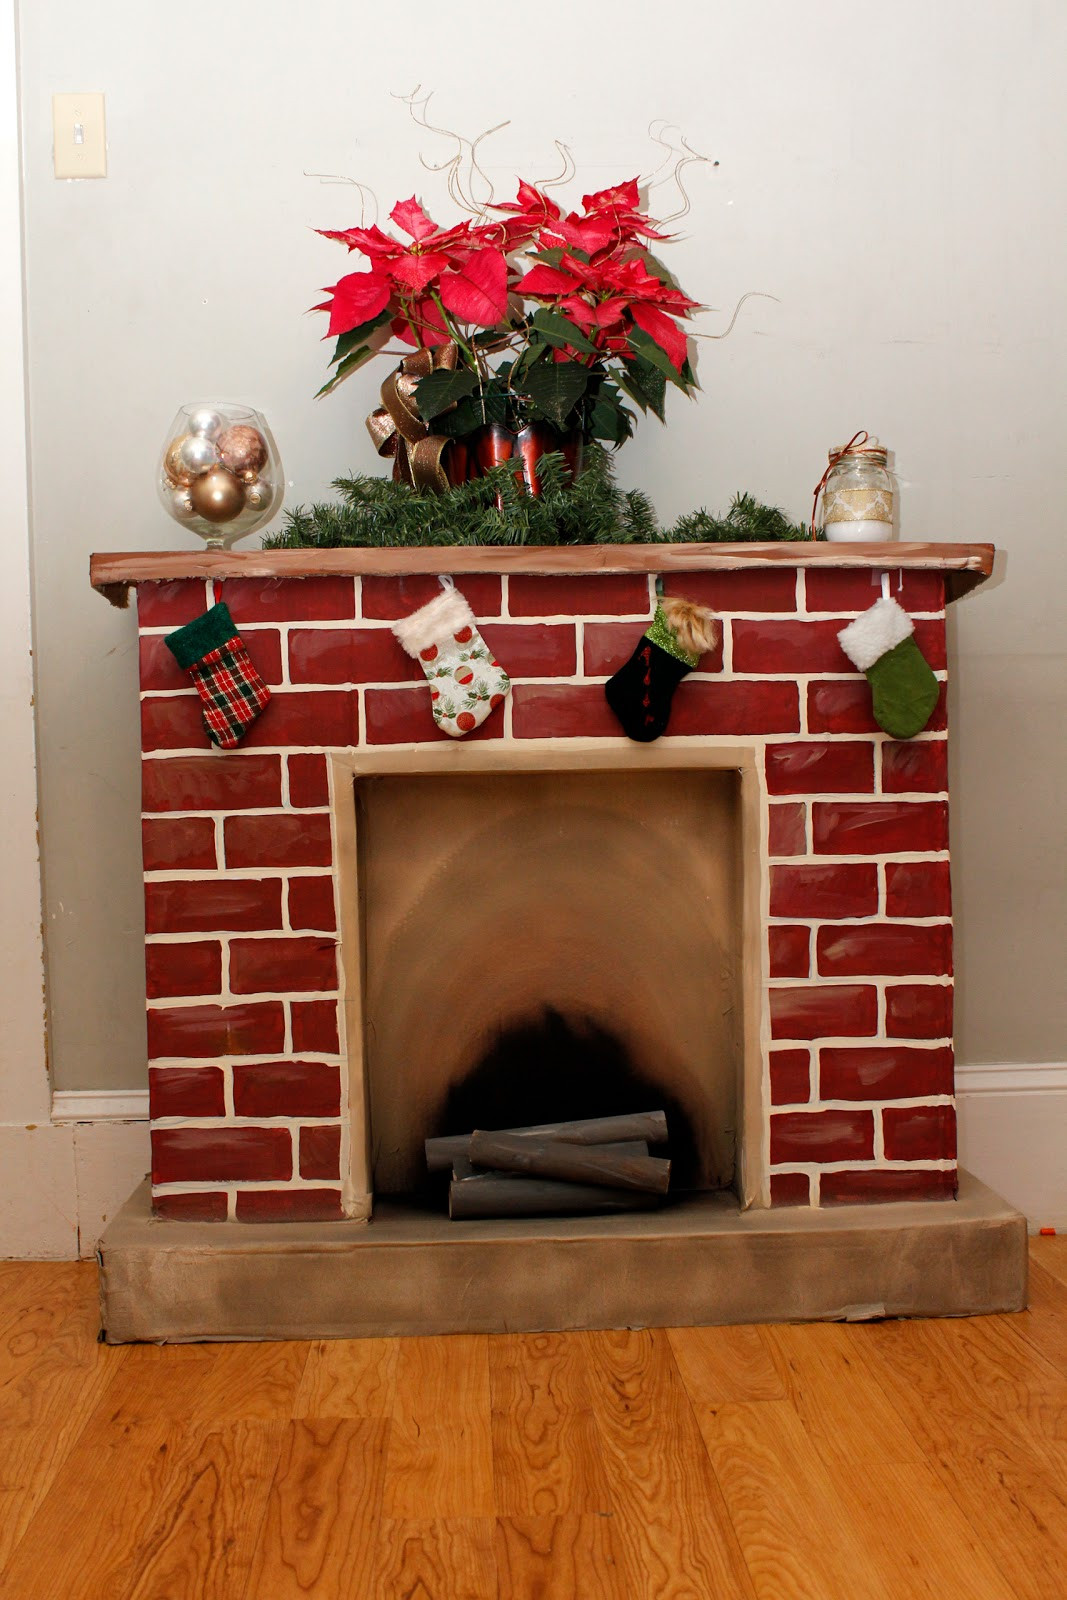 Christmas Cardboard Fireplace  365 Days to Simplicity Chestnuts roasting on an cardboard